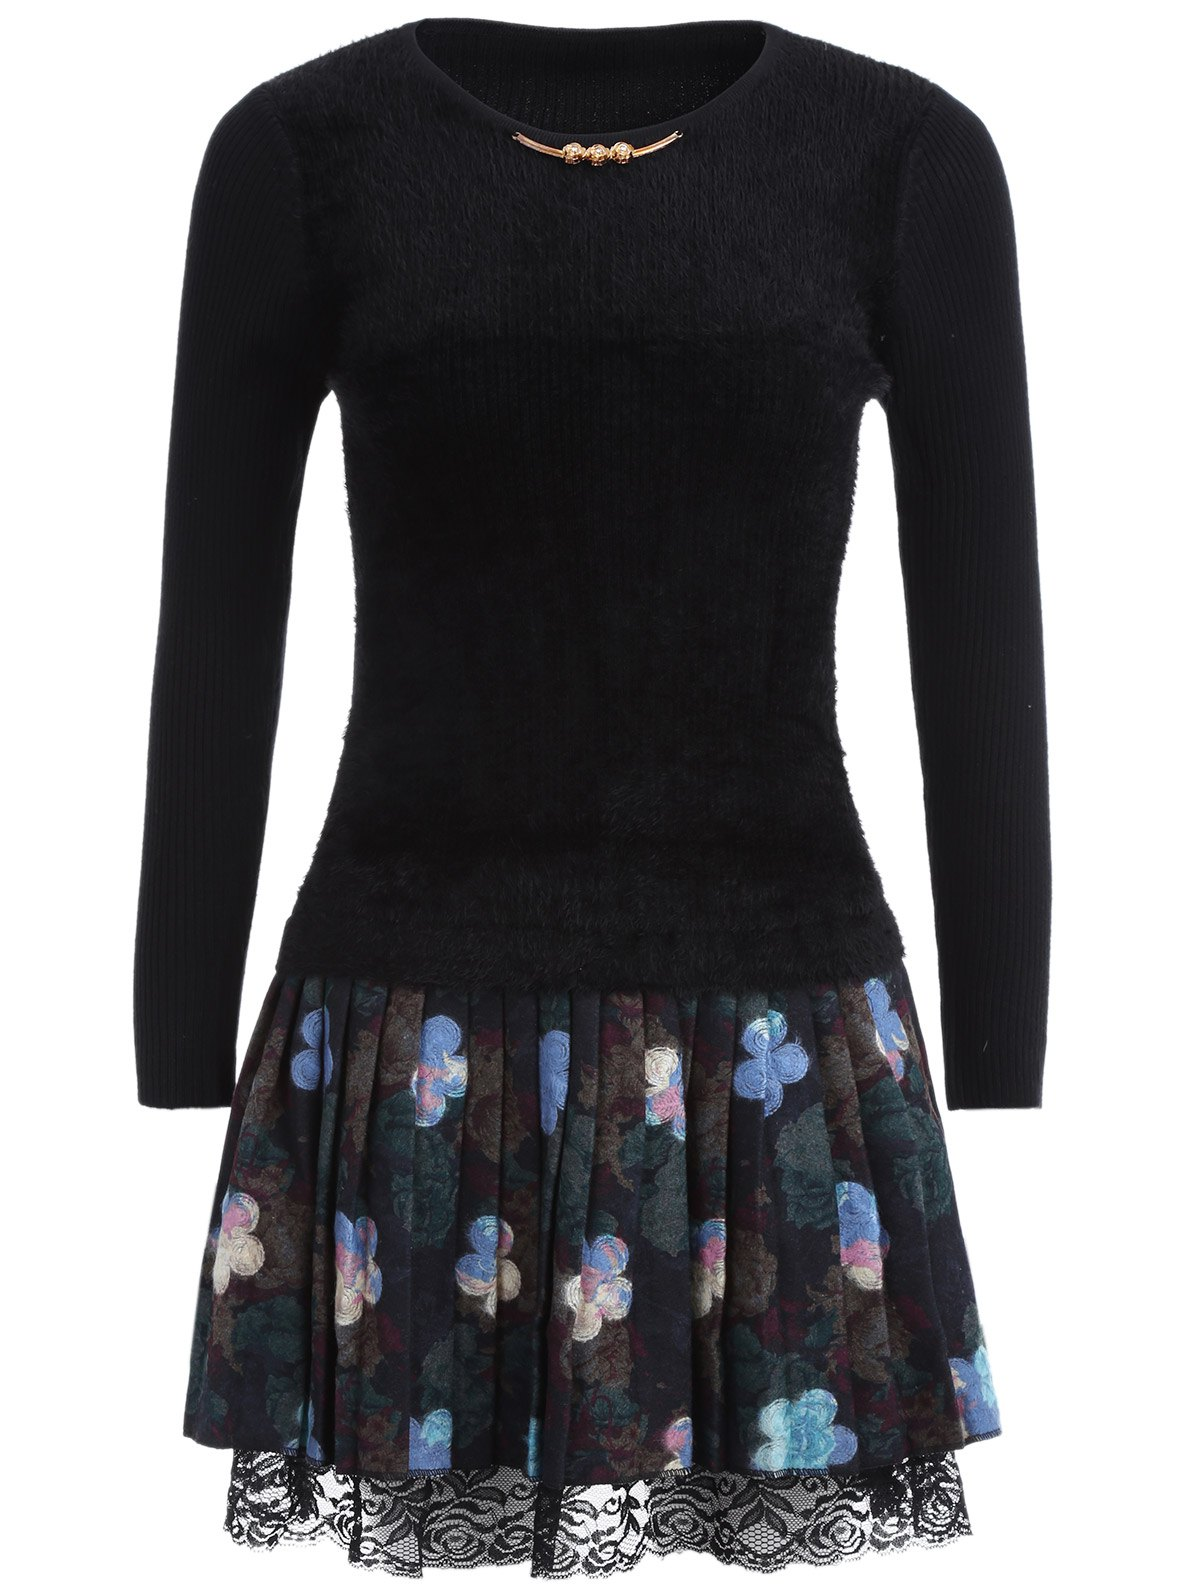 Floral Printed Fuzzy Sweater DressWomen<br><br><br>Size: ONE SIZE<br>Color: BLACK GREY